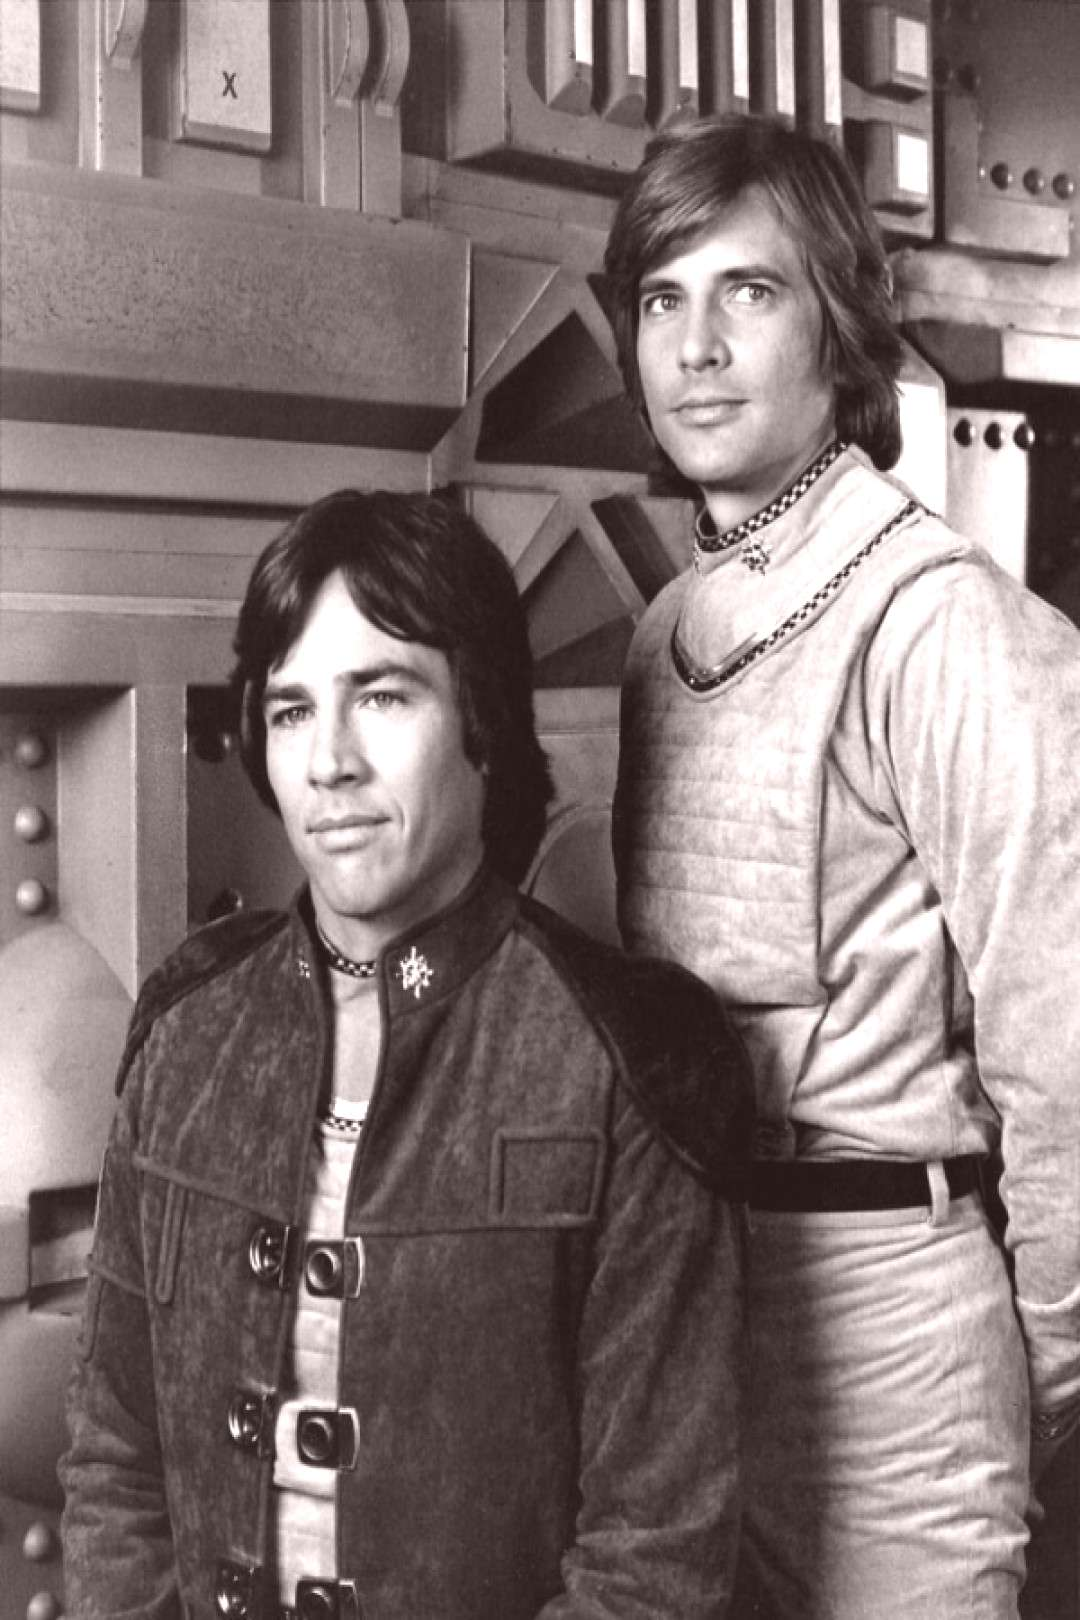 Battlestar Galactica: Revisit the vintage TV series that ran from 1978 to 1979 -